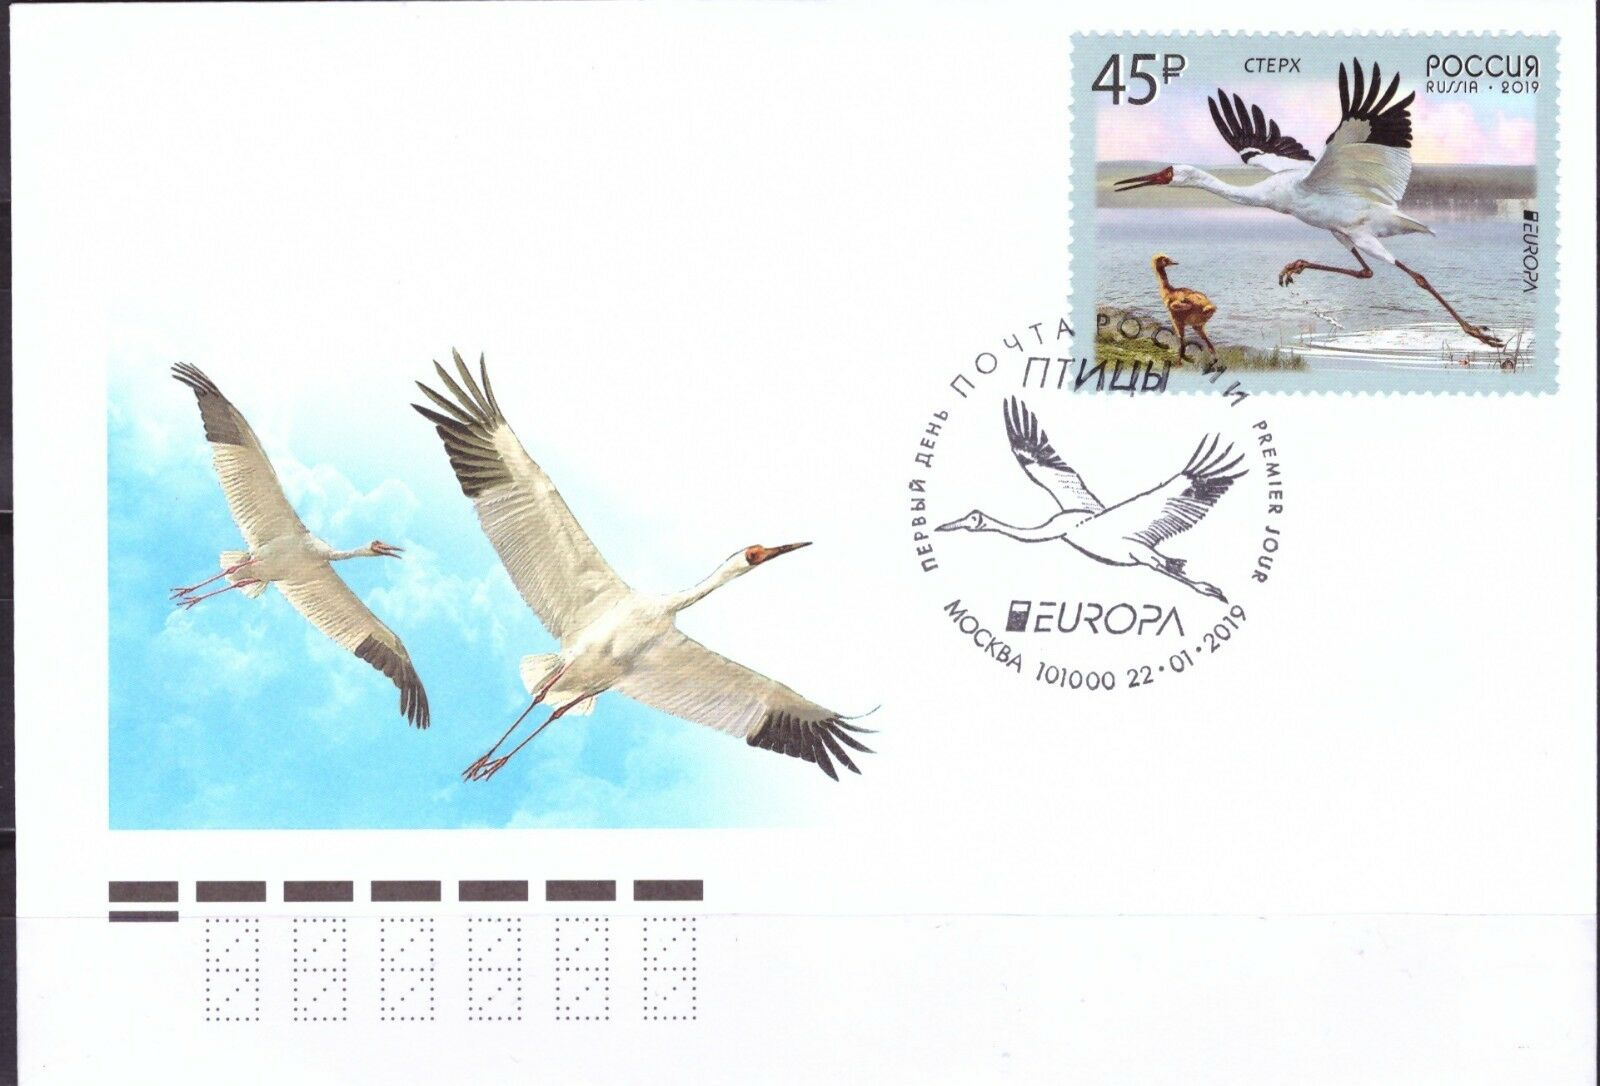 Russia - Europa 2019: National Birds (January 22, 2019) first day cover